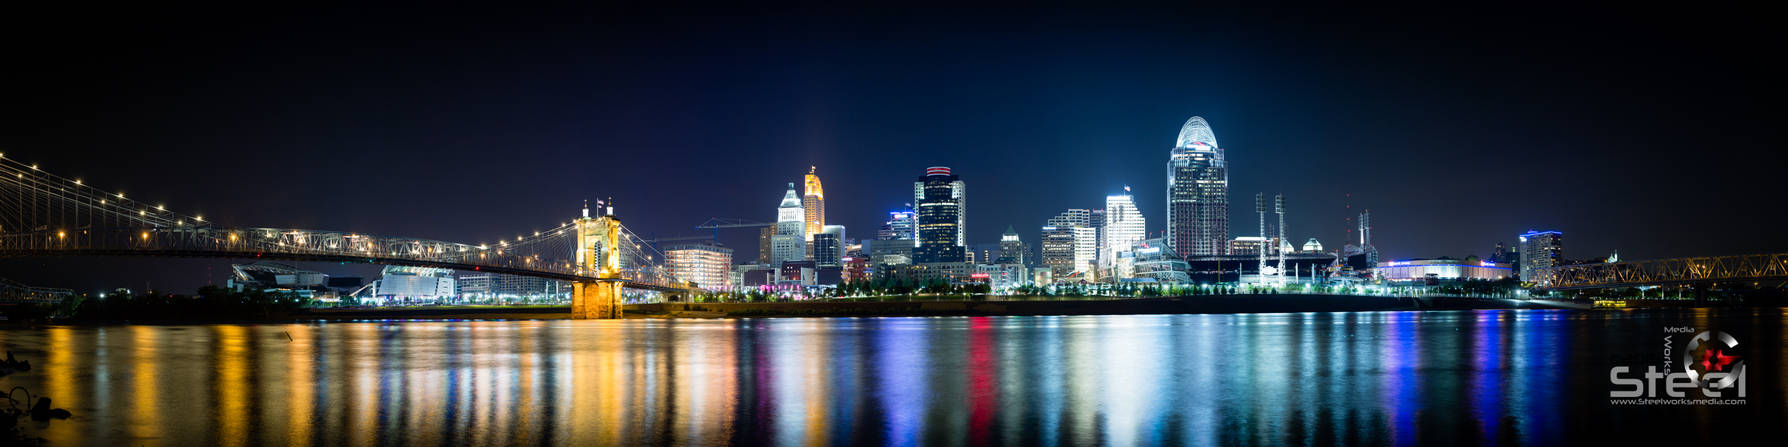 Cincinnati from the water front